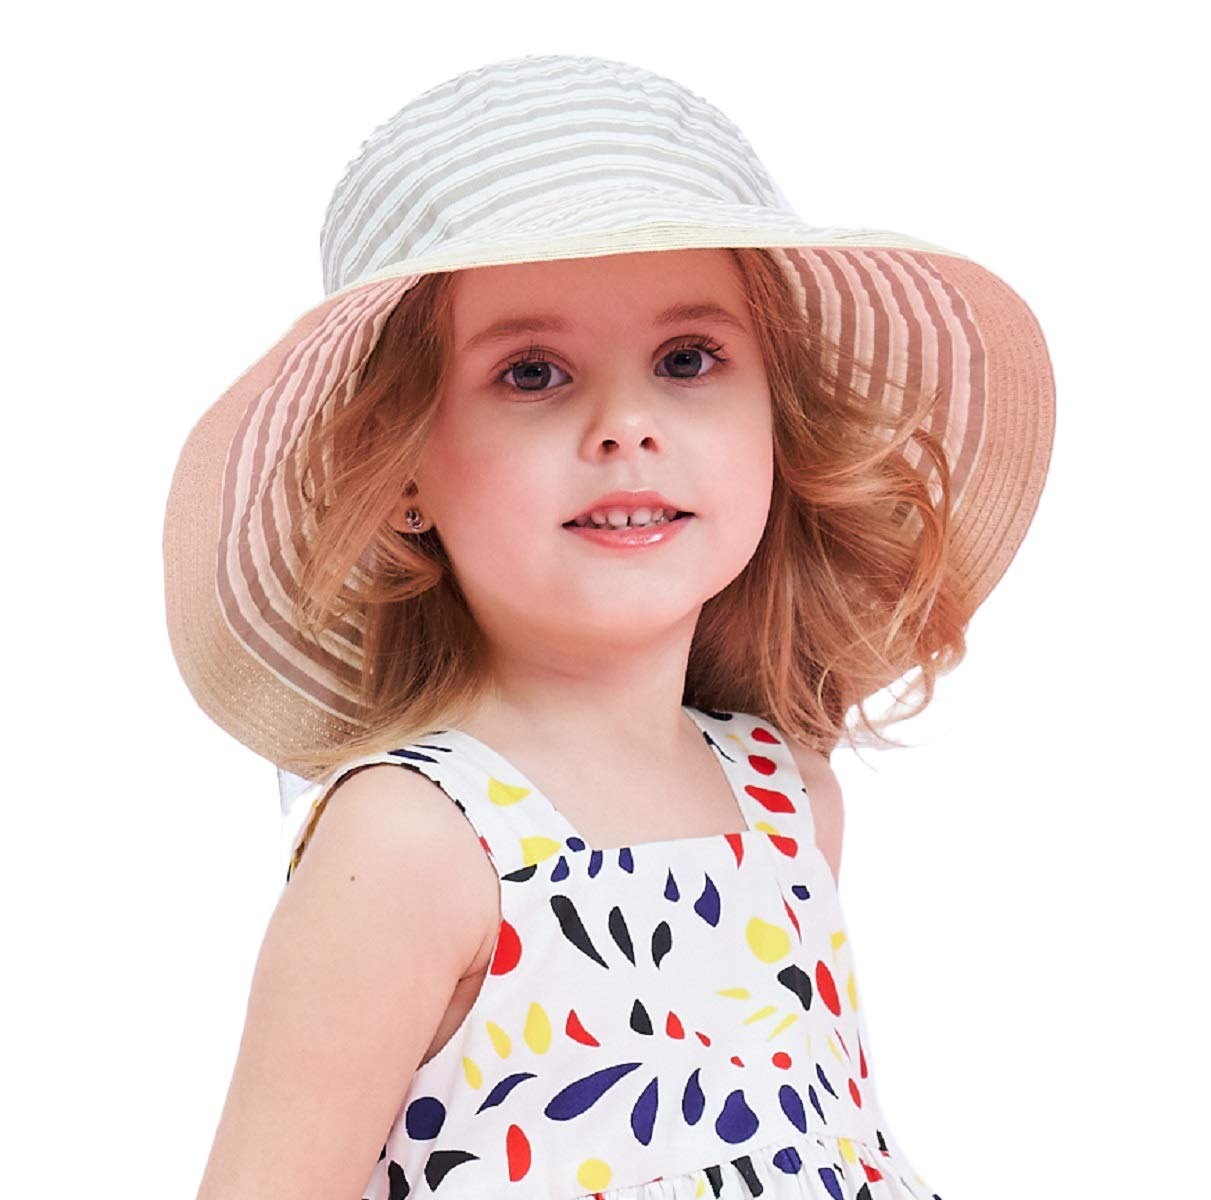 Connectyle Kids Girls Floppy Big Brim Sun Protection Hat Foldable Summer Beach Sun Hats for Toddler Champagne by Connectyle